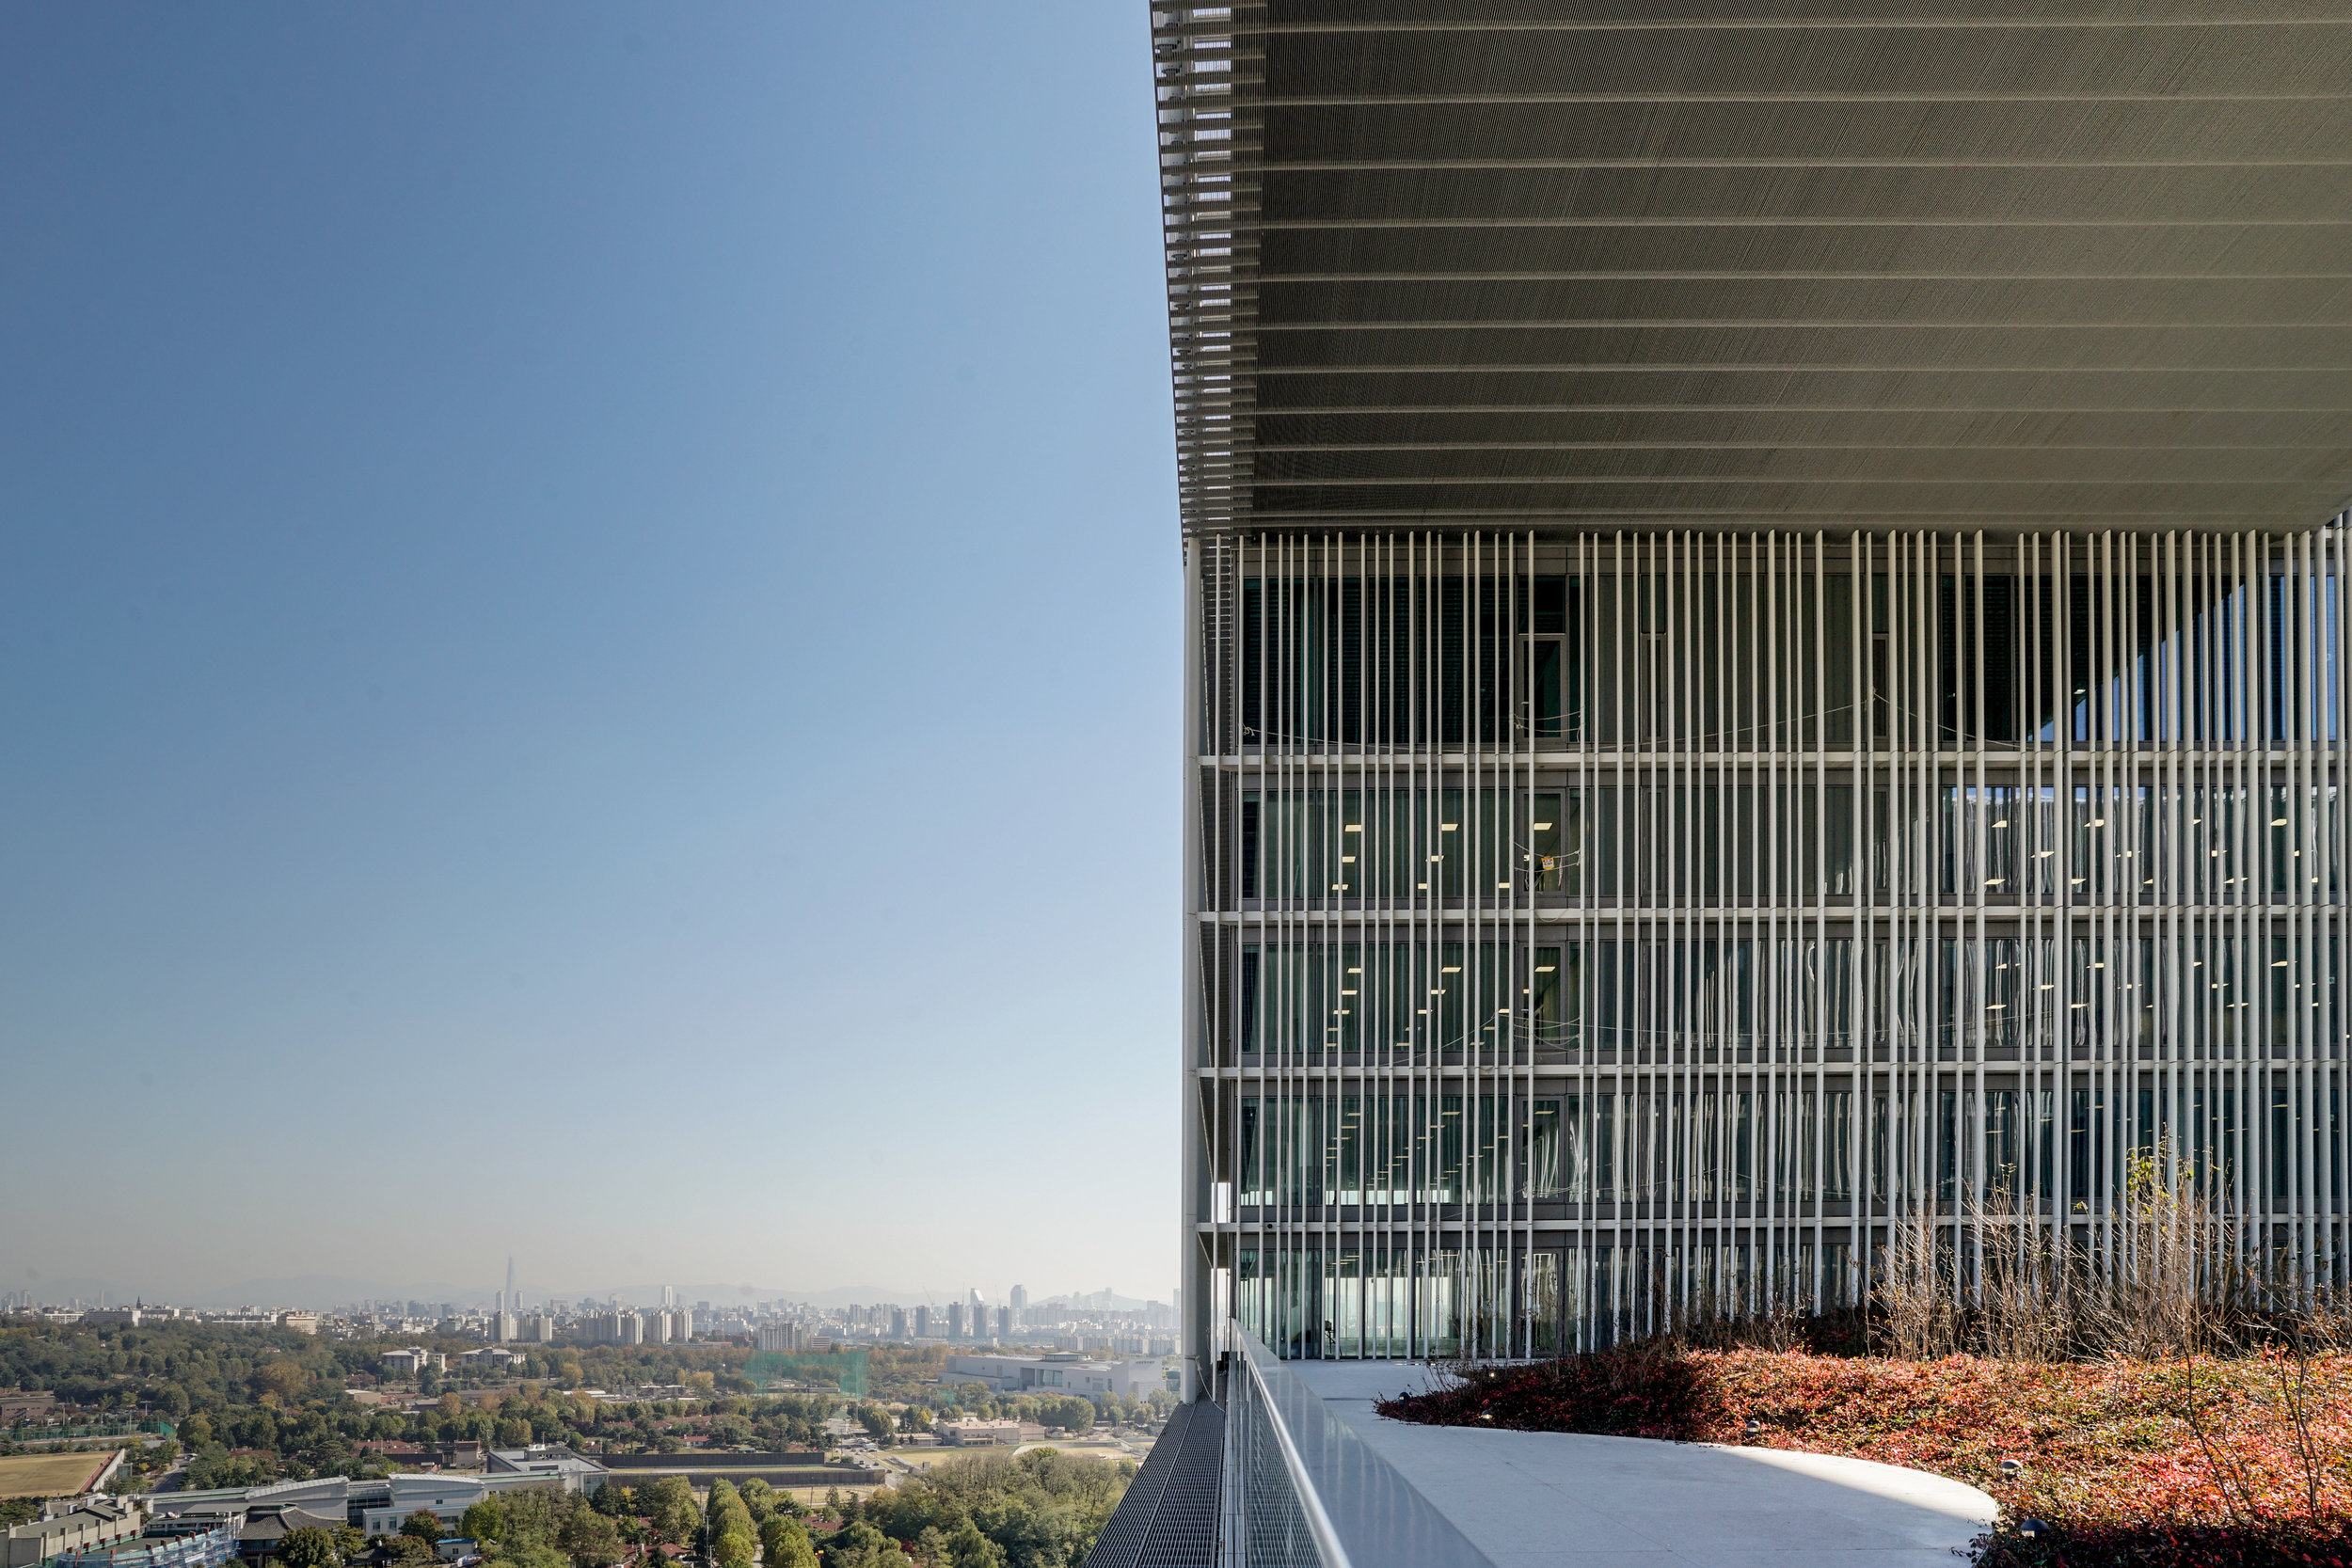 The view from the roof garden on the 16th floor.Photo credit: David Chipperfield Architects.